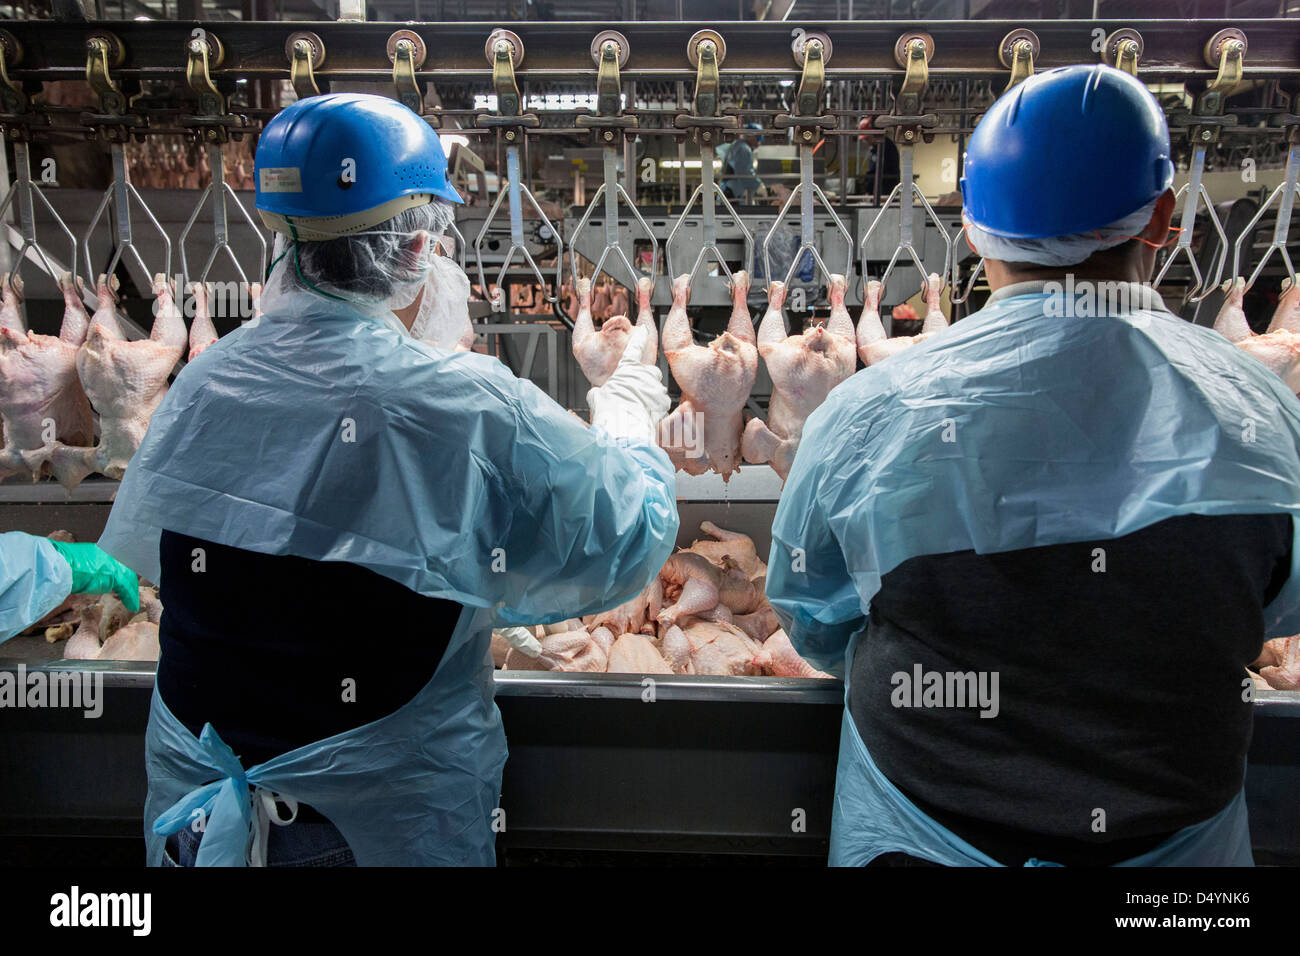 Workers prepare chicken carcasses on the line at a processing plant in Delaware, United States on March 1, 2013. - Stock Image